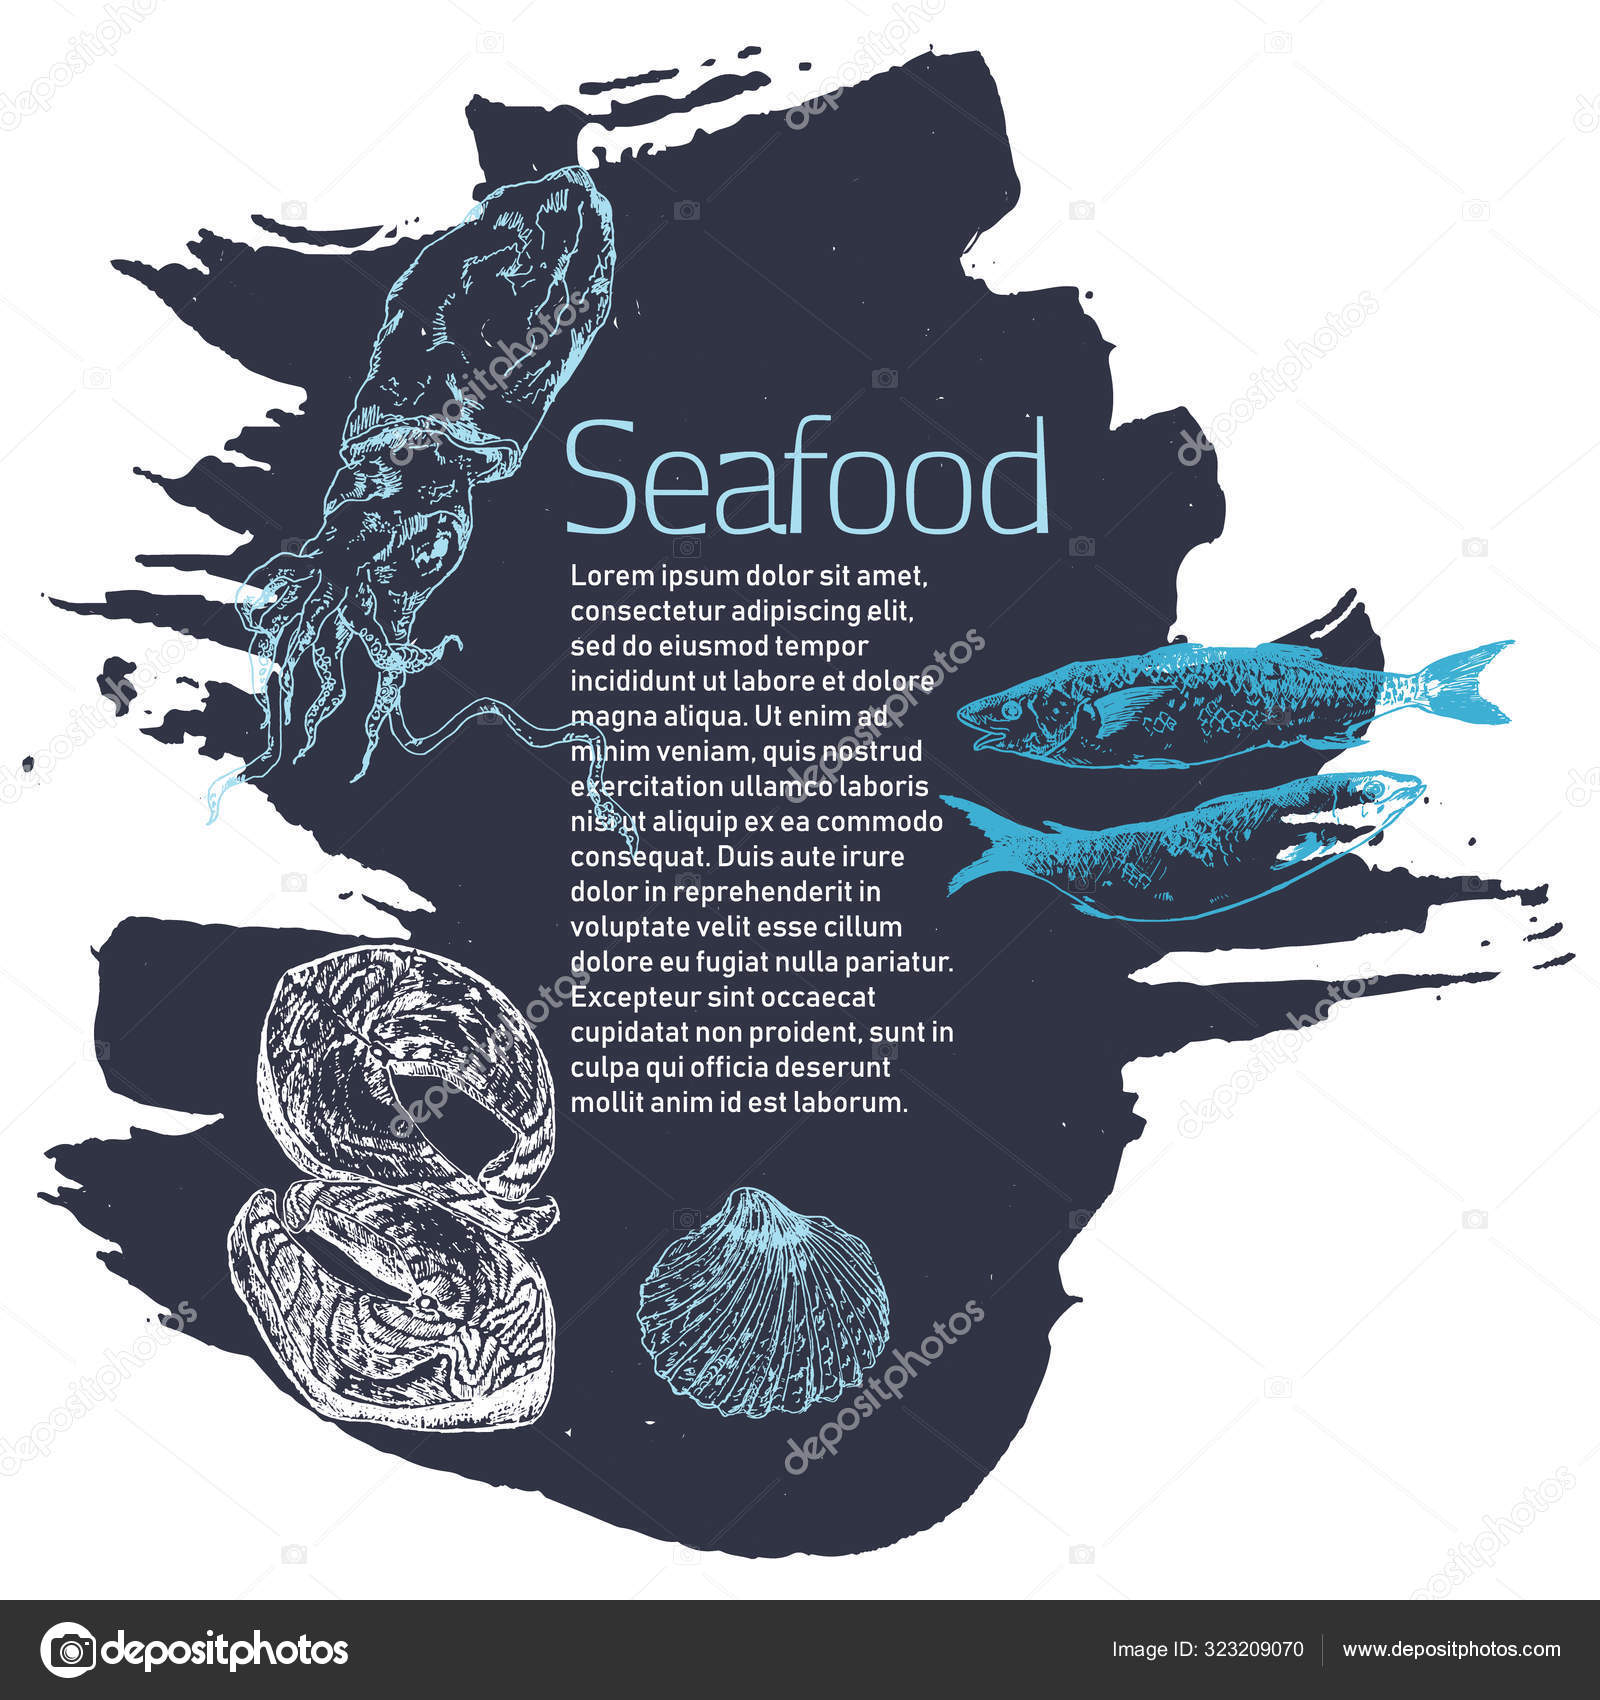 Fish And Sea Food Restaurant Poster Sketch Vector Illustration Fish And Sea Food Cuisine Restaurant Or Cafe Seafood And Fish Sketch Banner Stock Vector C Bychovsky Gmail Com 323209070